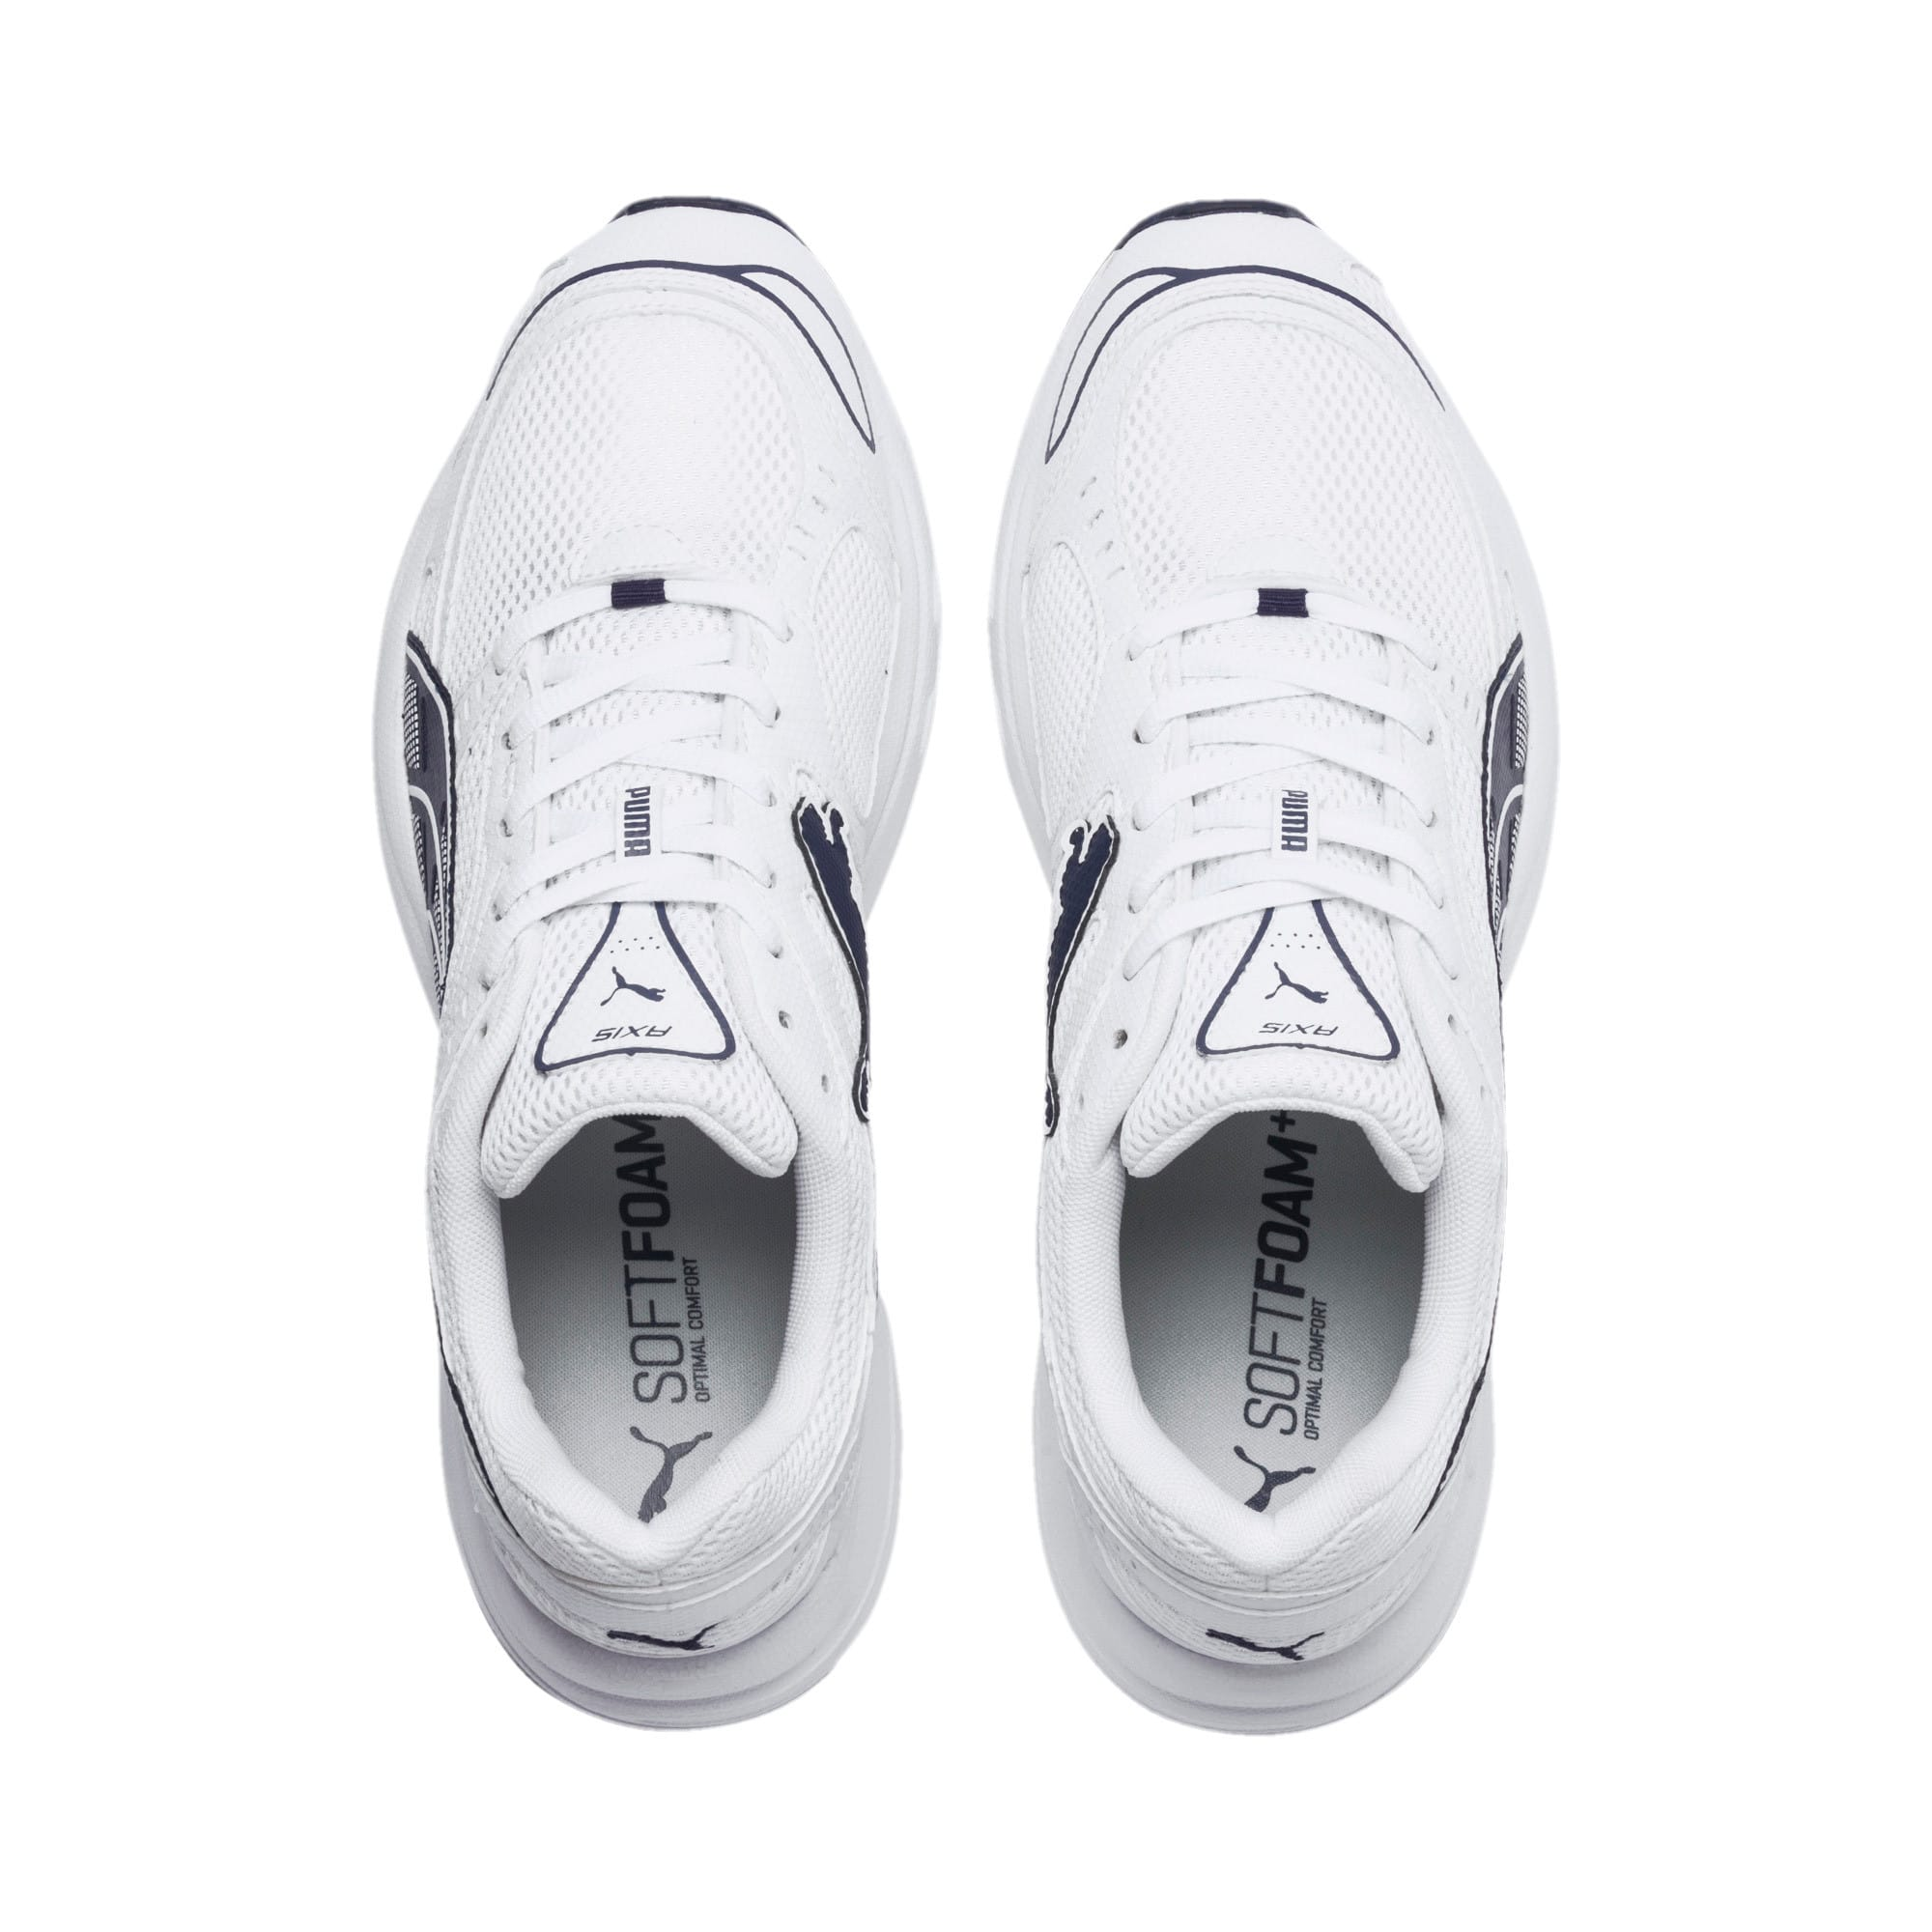 Axis Sneakers, Puma White-Peacoat, large